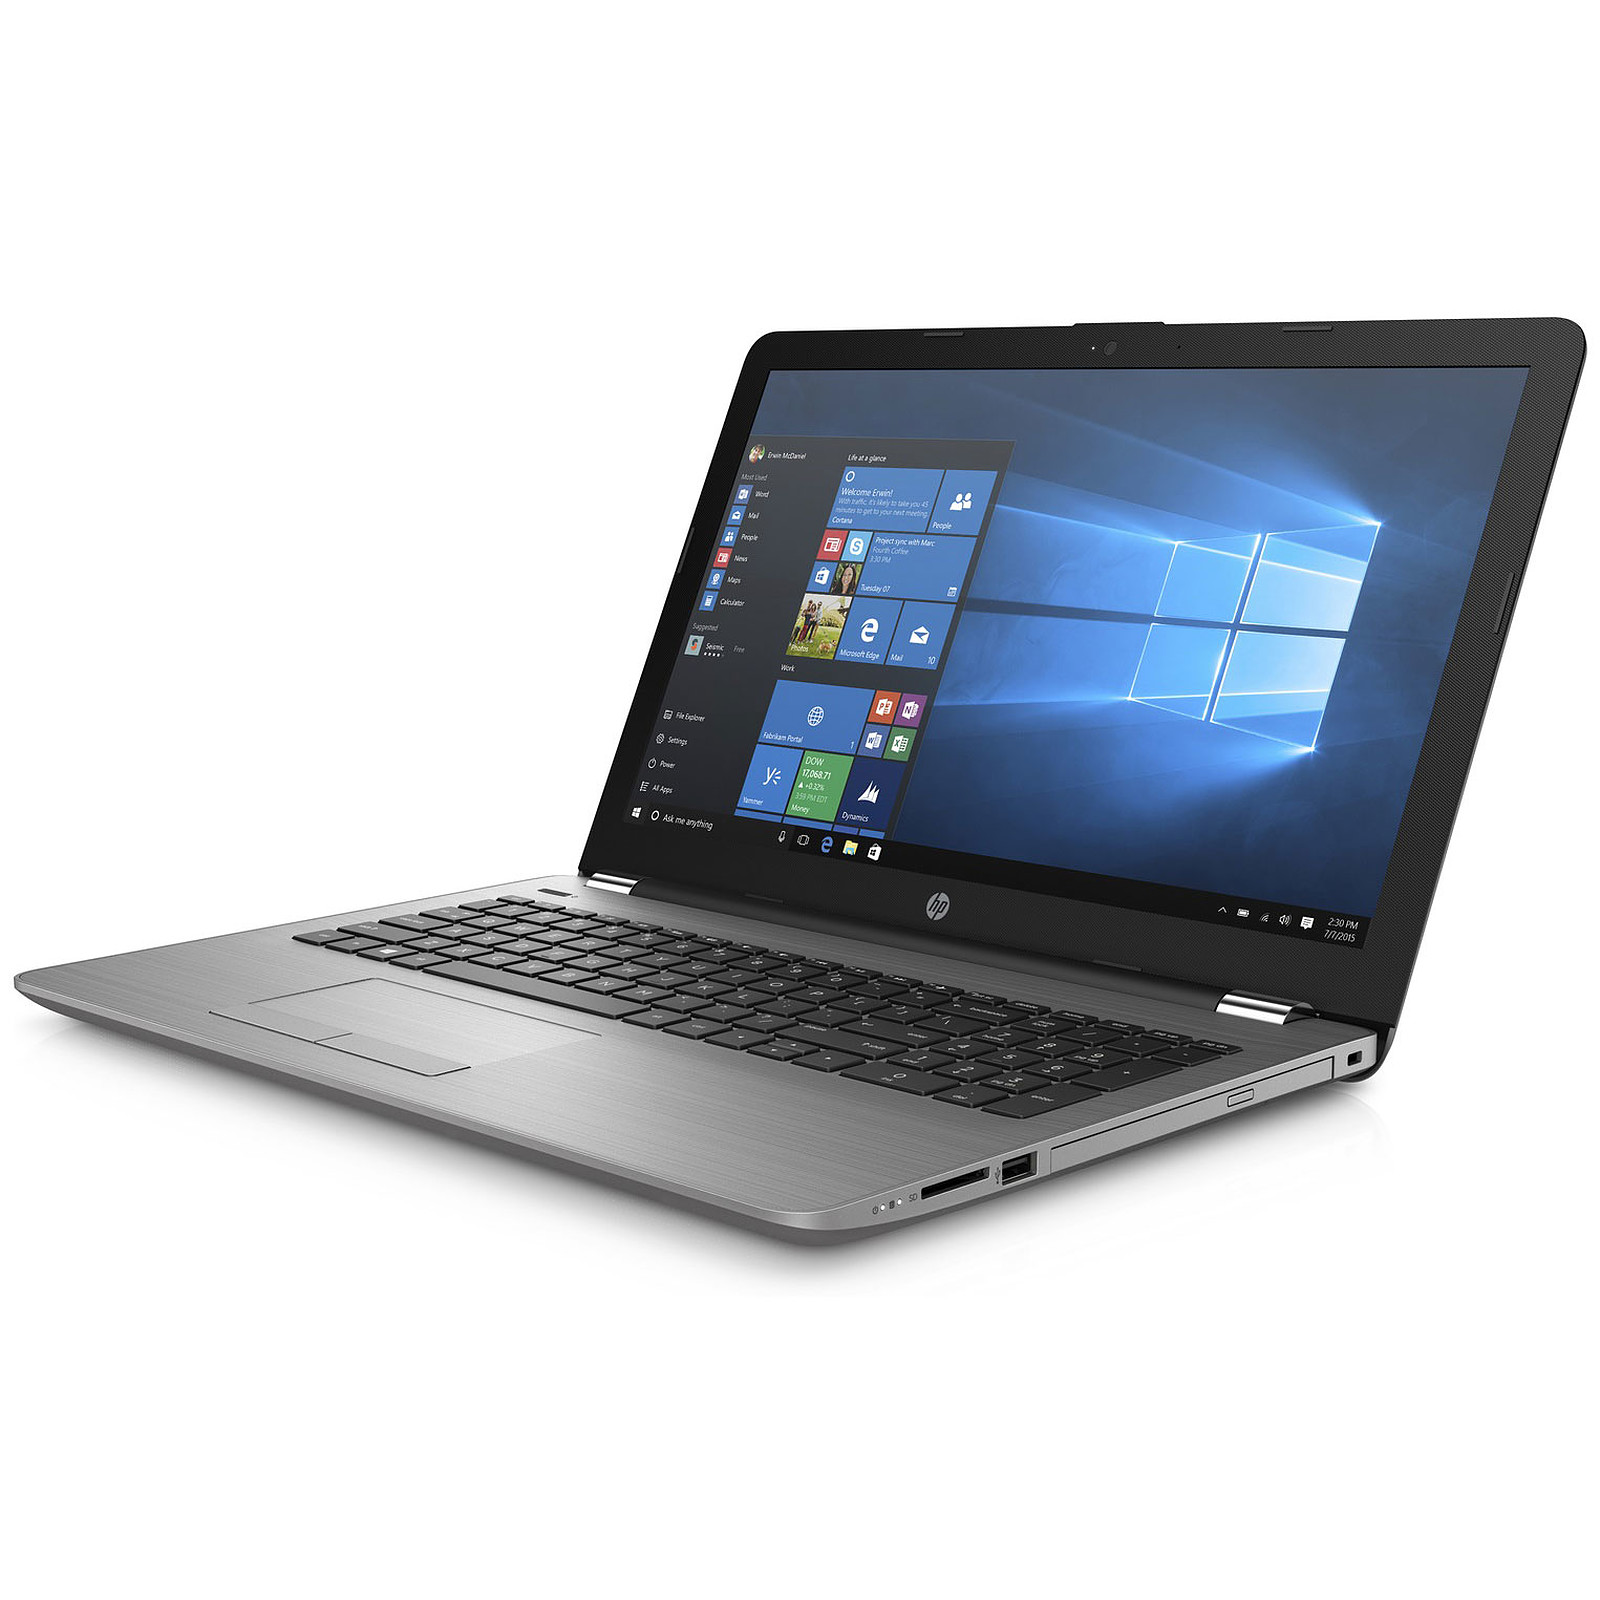 Ordinateur portable HP Probook 250 G6, Intel Core i5, 8 Go DDR4, SSD 256 Go, 15,6 pouces, W10 64bits, informatique Reunion 974, Futur Réunion informatique